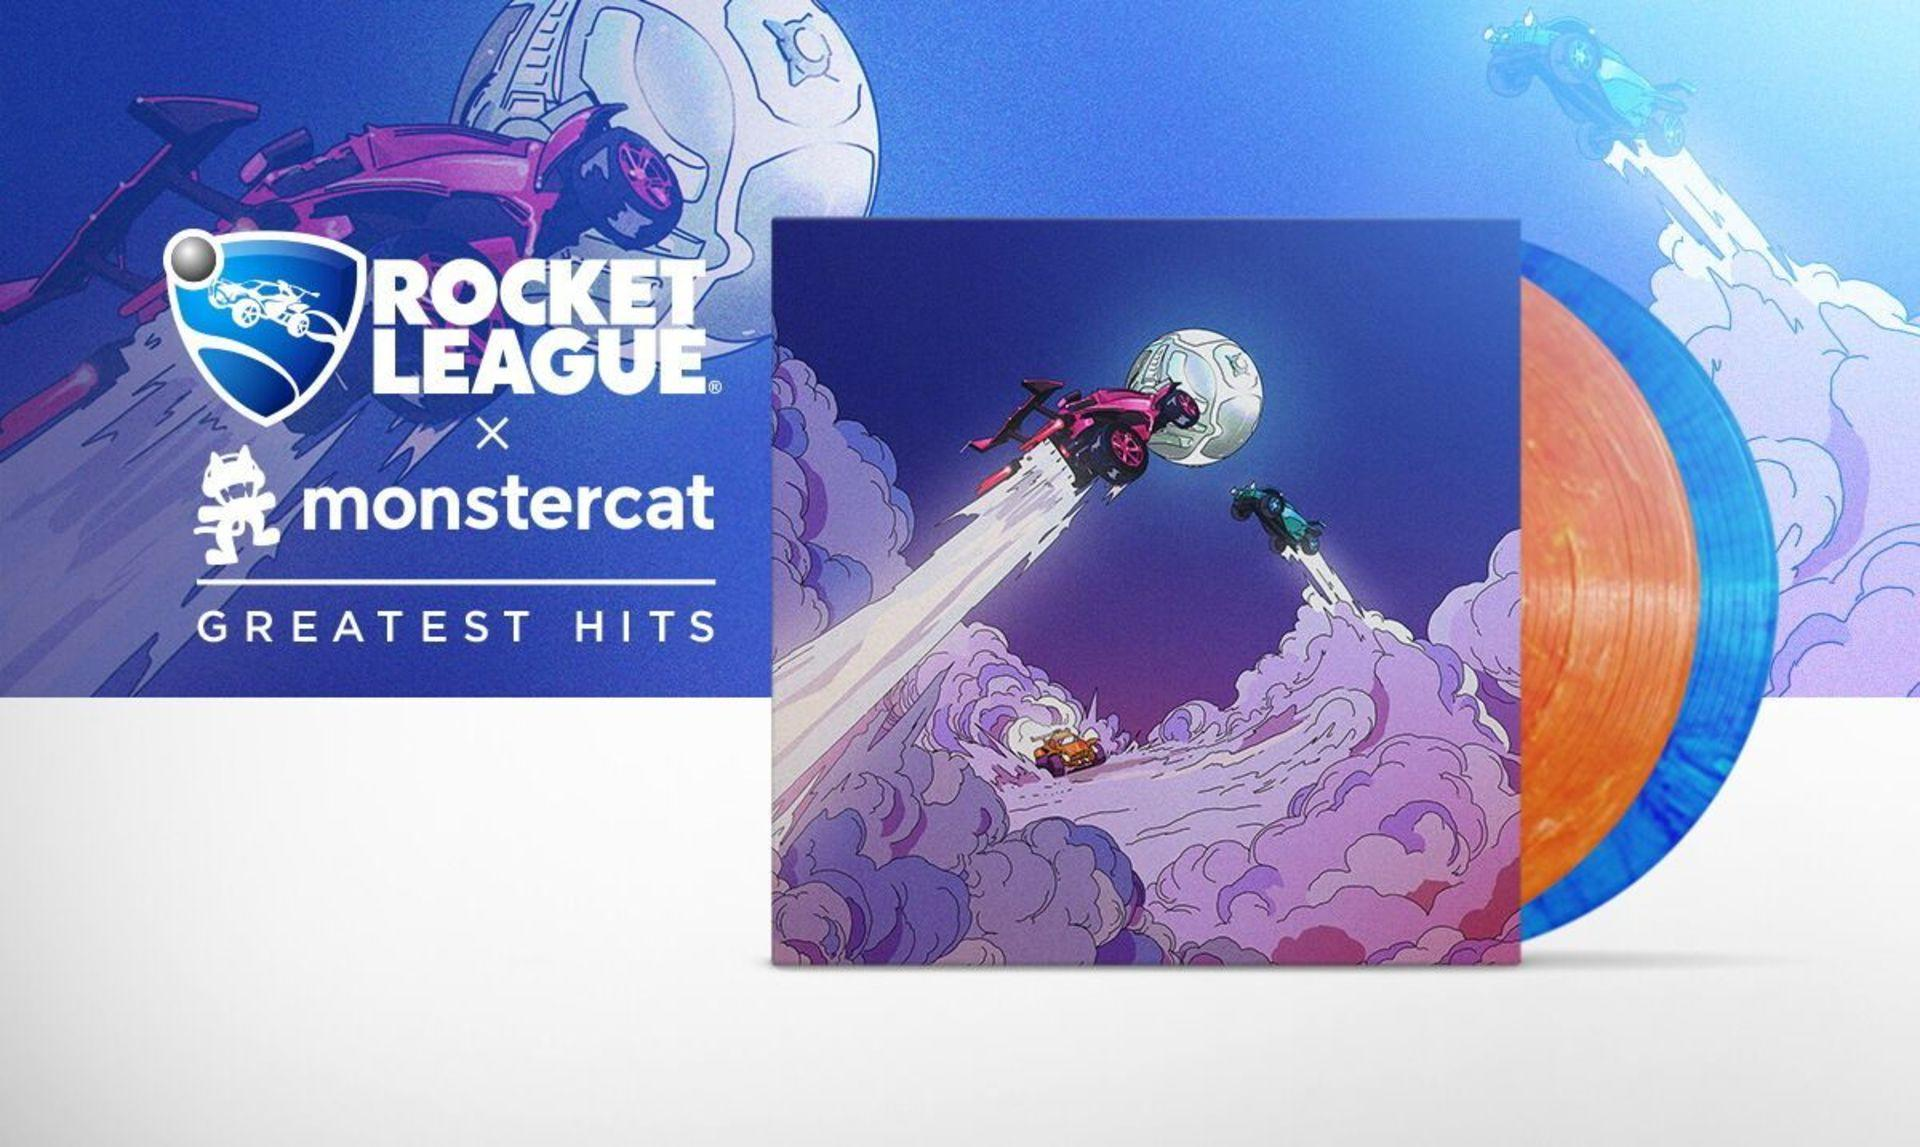 Pre-Order The First-Ever Rocket League x Monstercat Greatest Hits Vinyl! Image